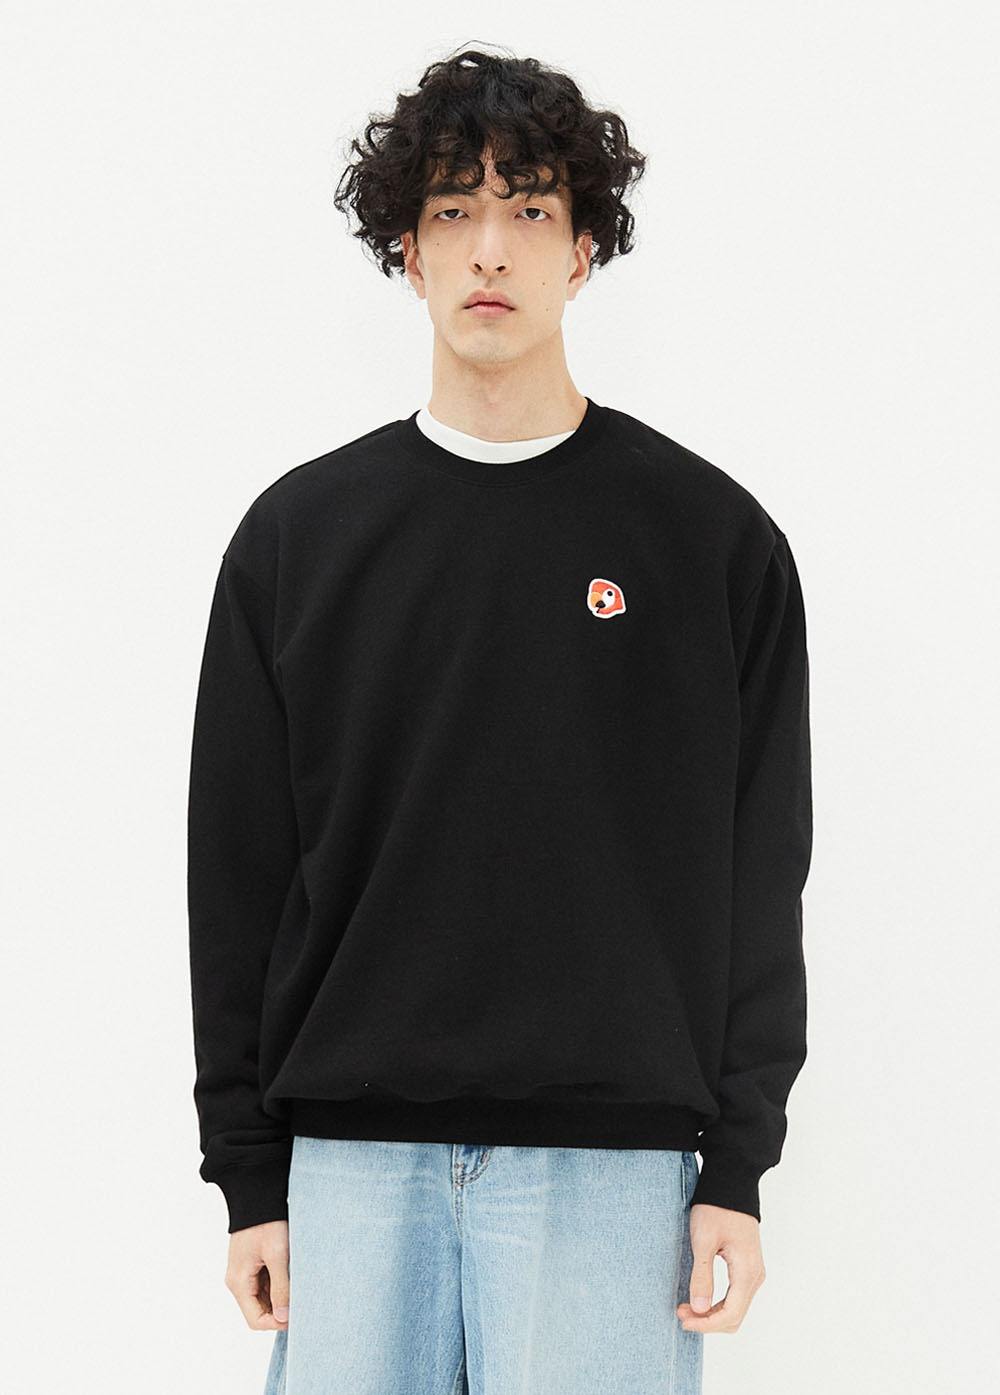 KANCO LOGO SWEATSHIRT black